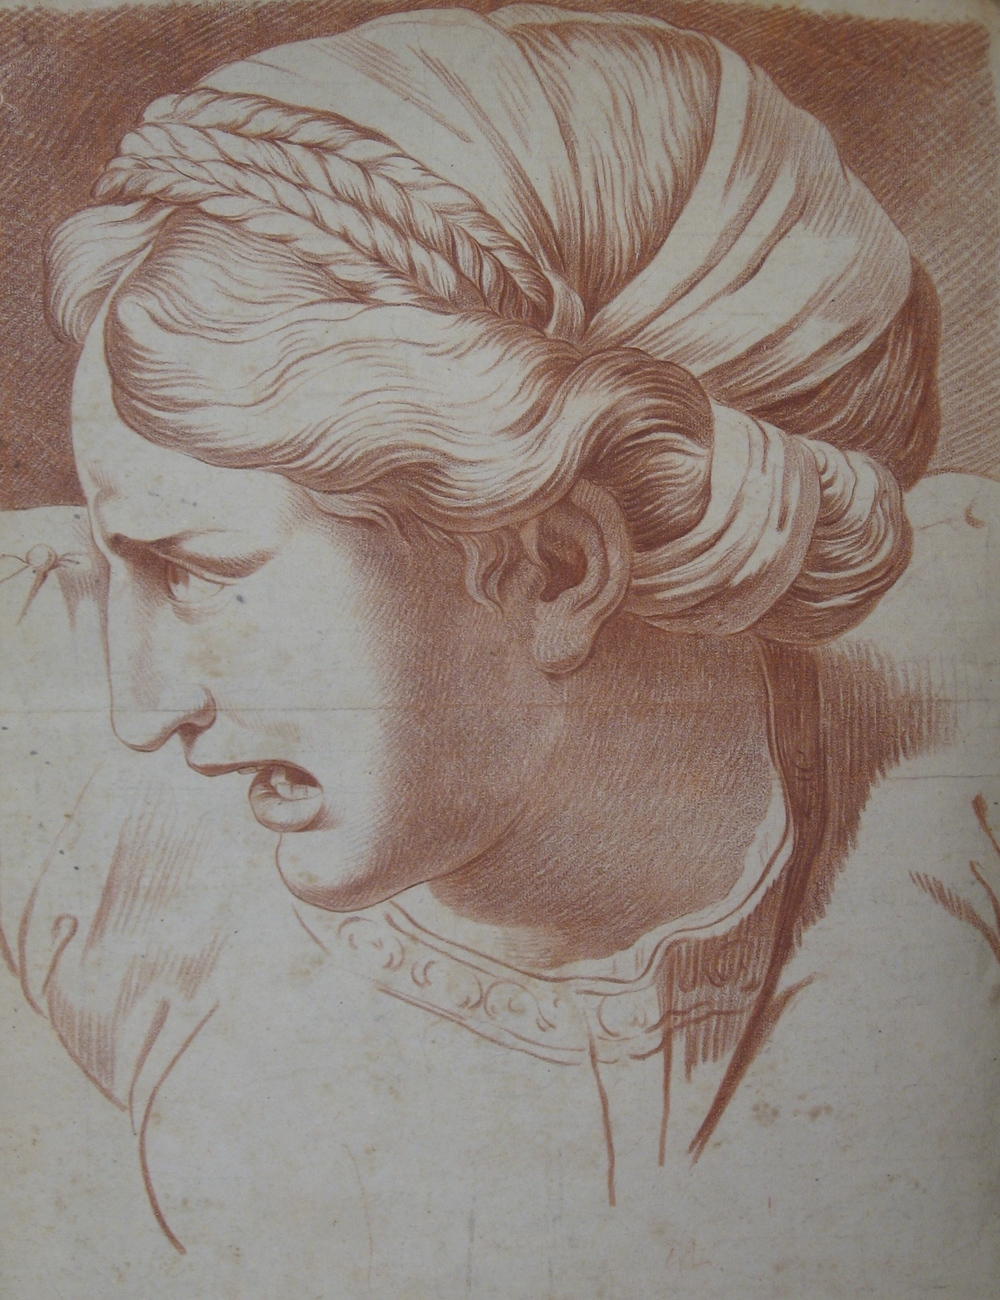 TITLE: Sibyl ou Sabine, L'École de David Year: c. 1730 Medium: Red chalk drawing Image size: 15 ¾  x 20 ½